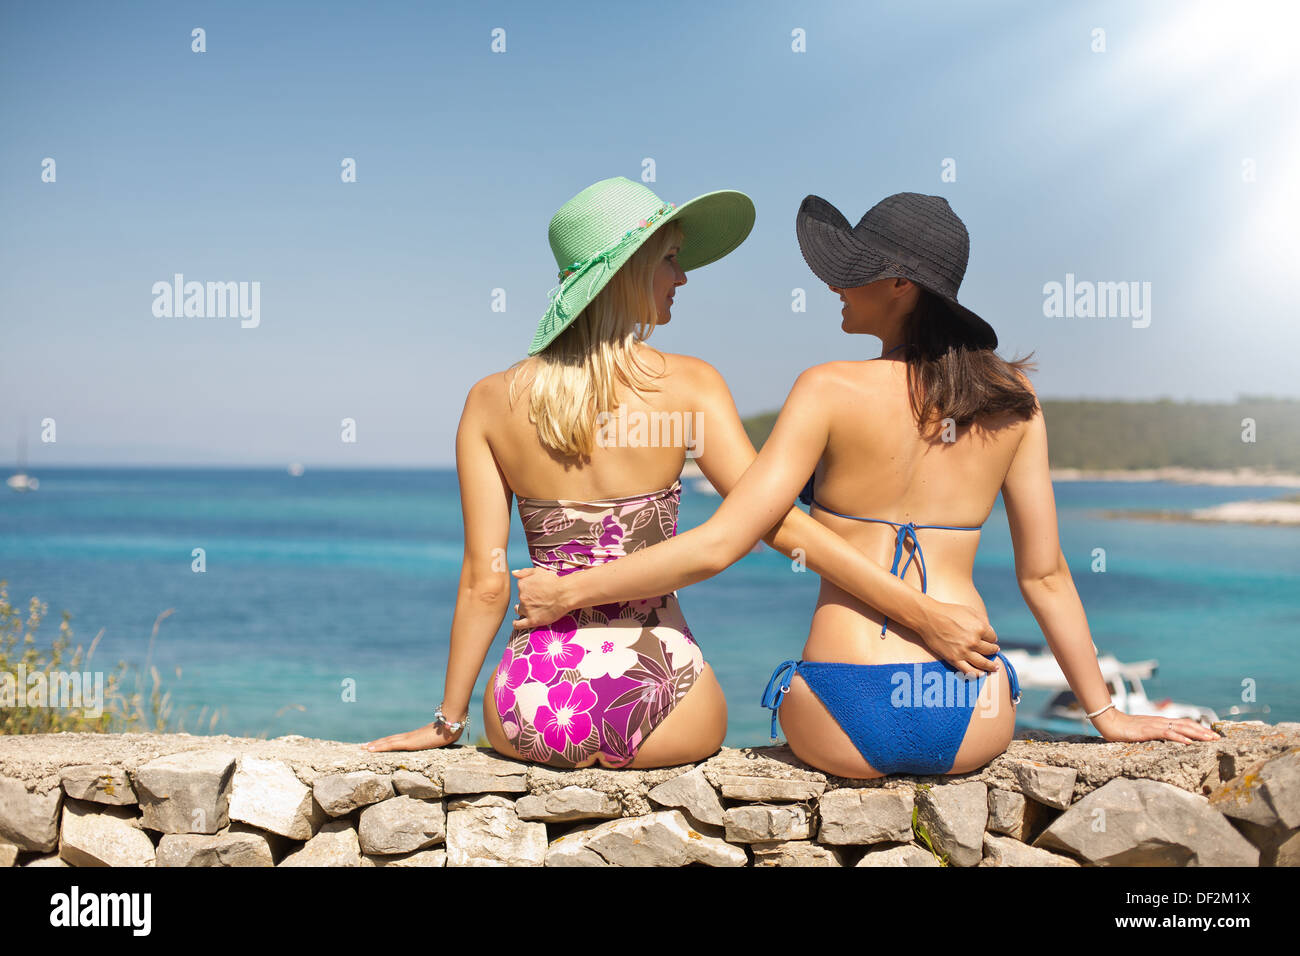 Summer shapely ladies on the beach - Stock Image